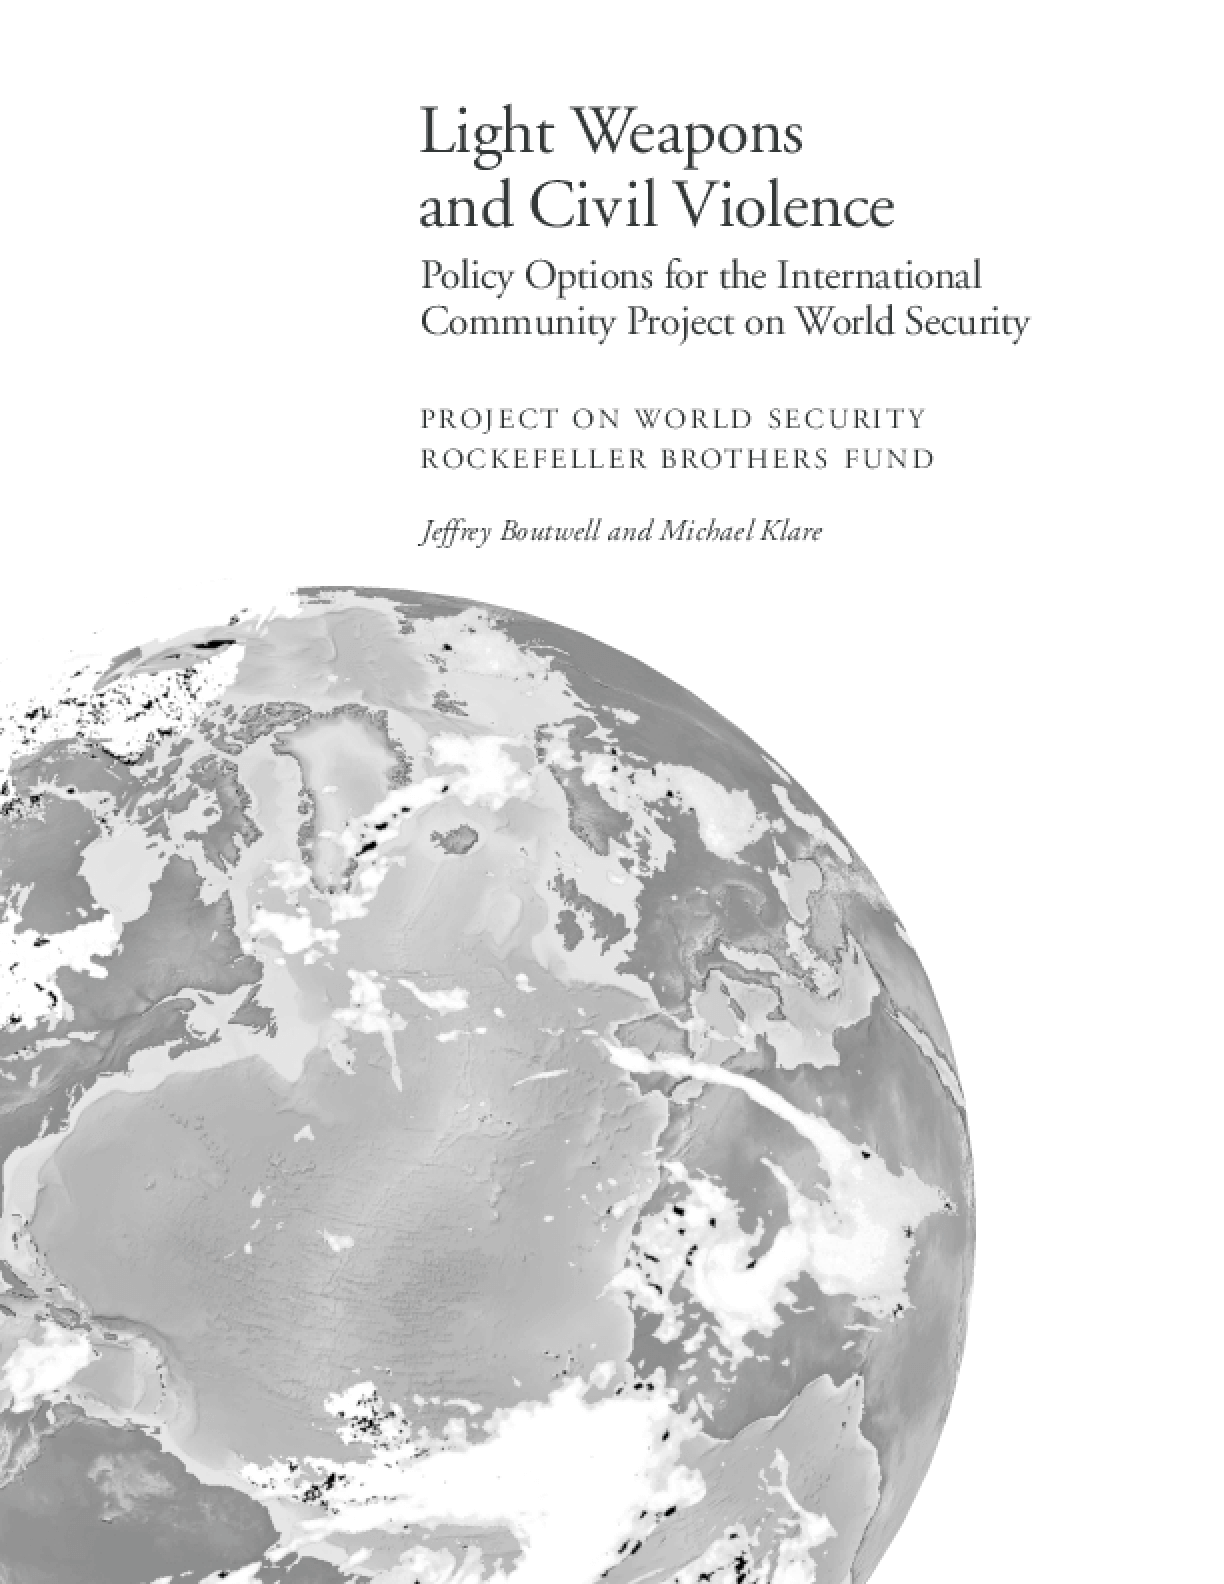 Light Weapons and Civil Violence: Policy Options for the International Community